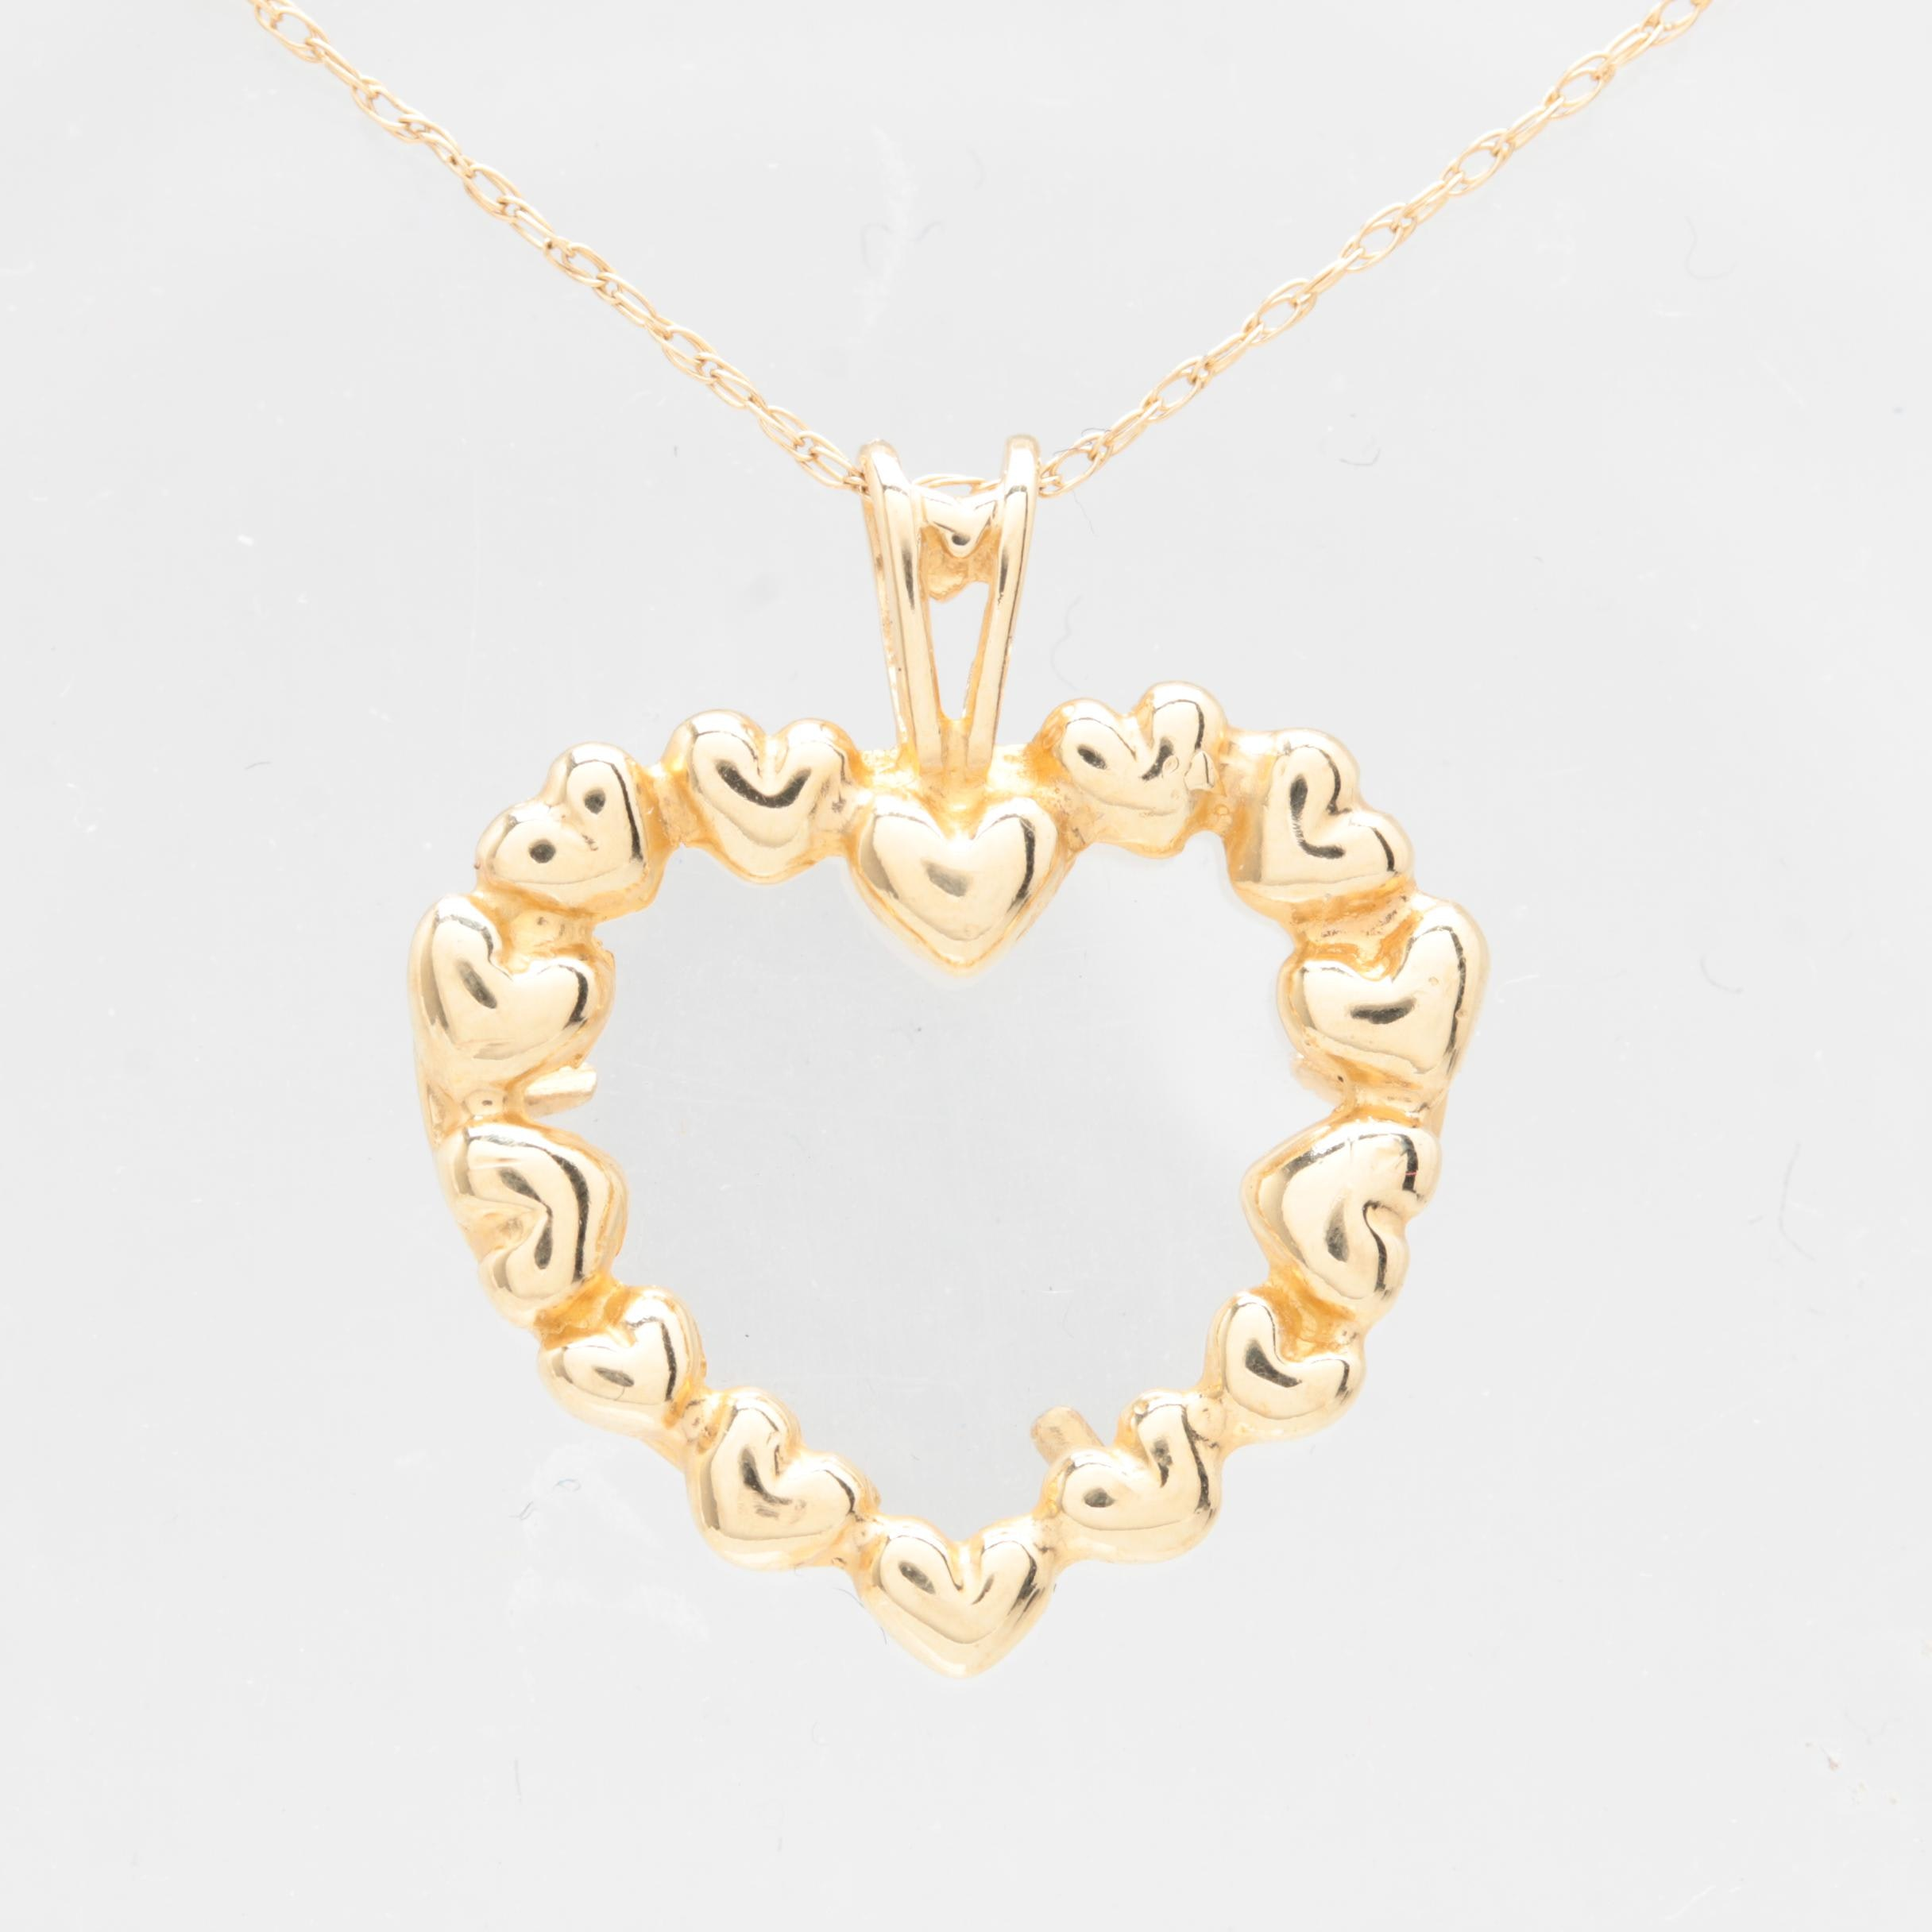 Peter Brams Designs 14K Yellow Gold Glass Heart Pendant Necklace